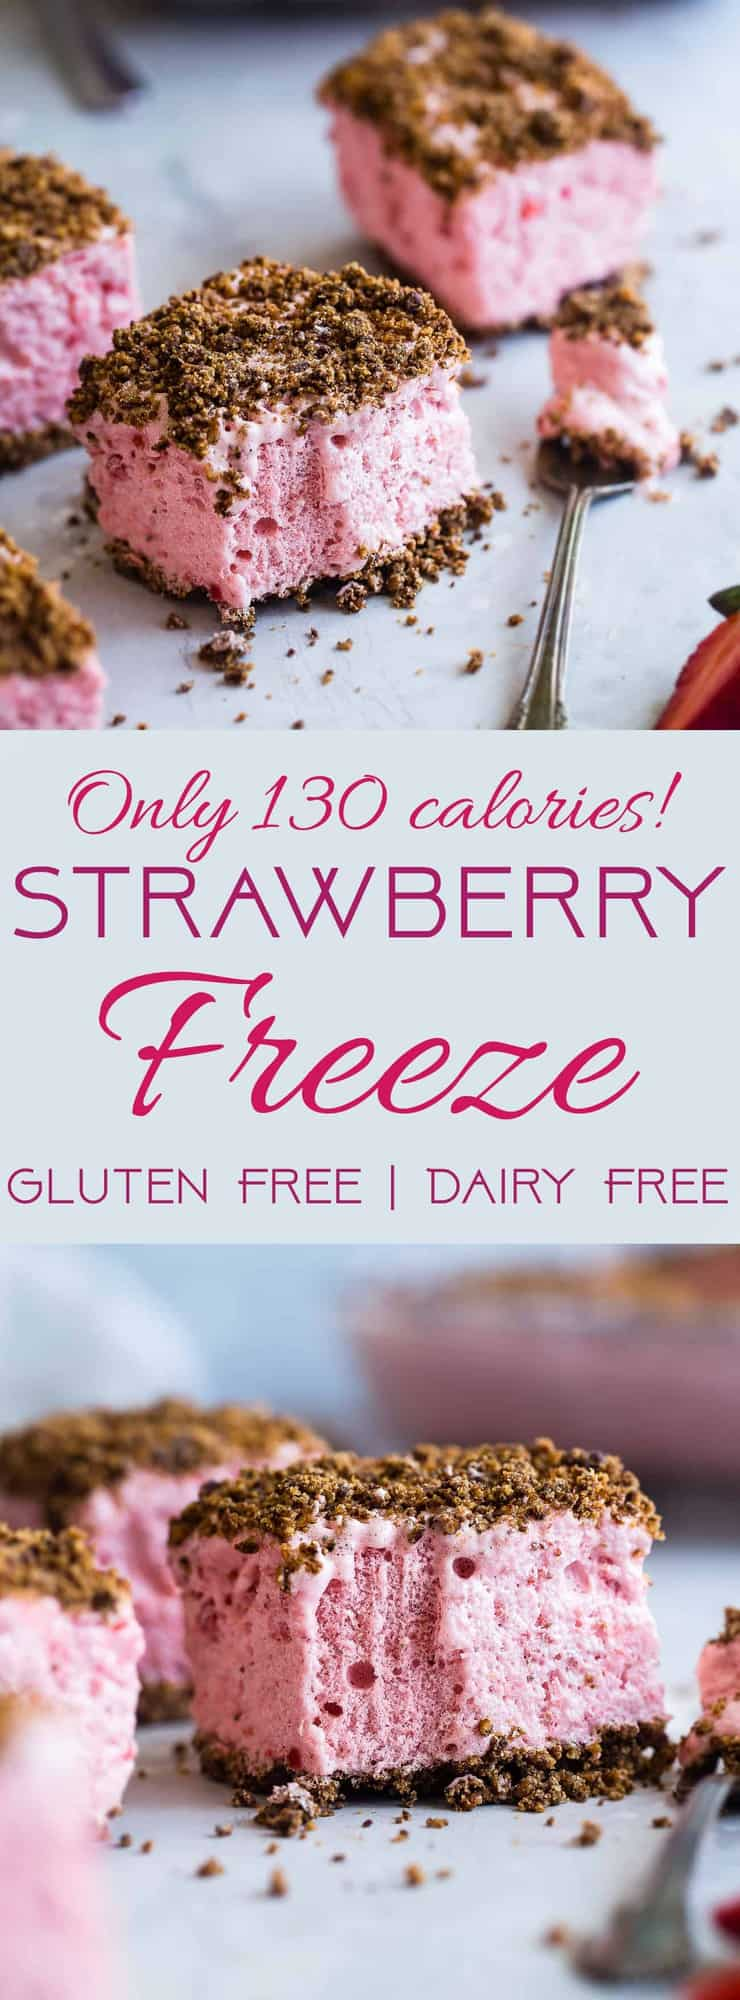 Strawberry Freeze - A low calorie, quick and easy, gluten free healthy Frozen Strawberry Dessert Recipe with a crunchy, pecan crumble! Always a hit with kids and adults and everyone always wants the recipe! | #Foodfaithfitness | #Glutenfree #Dairyfree #Healthy #Strawberries #Dessert